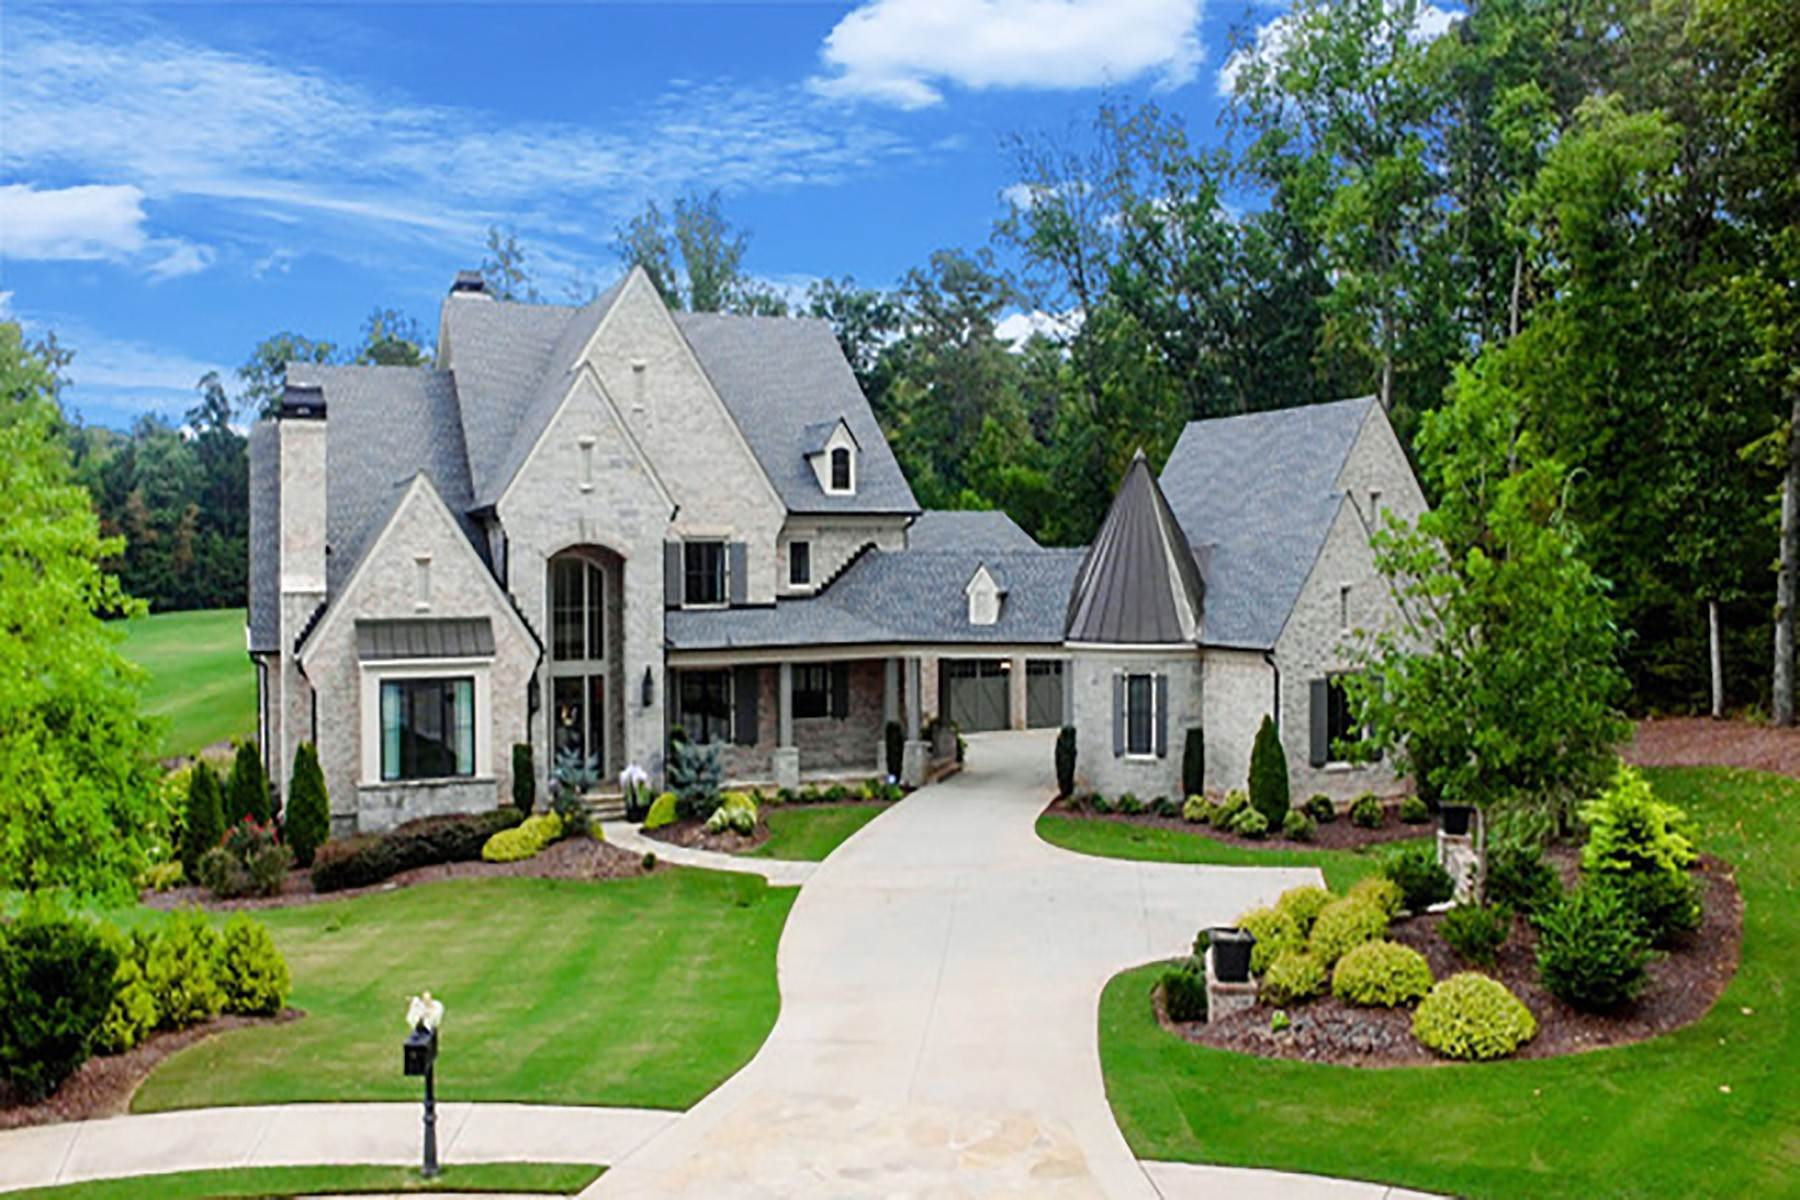 Single Family Homes for Active at Exquisitely Appointed Estate with Fabulous Pool and Amazing Golf Course Views 715 Balley Forrest Court Milton, Georgia 30004 United States